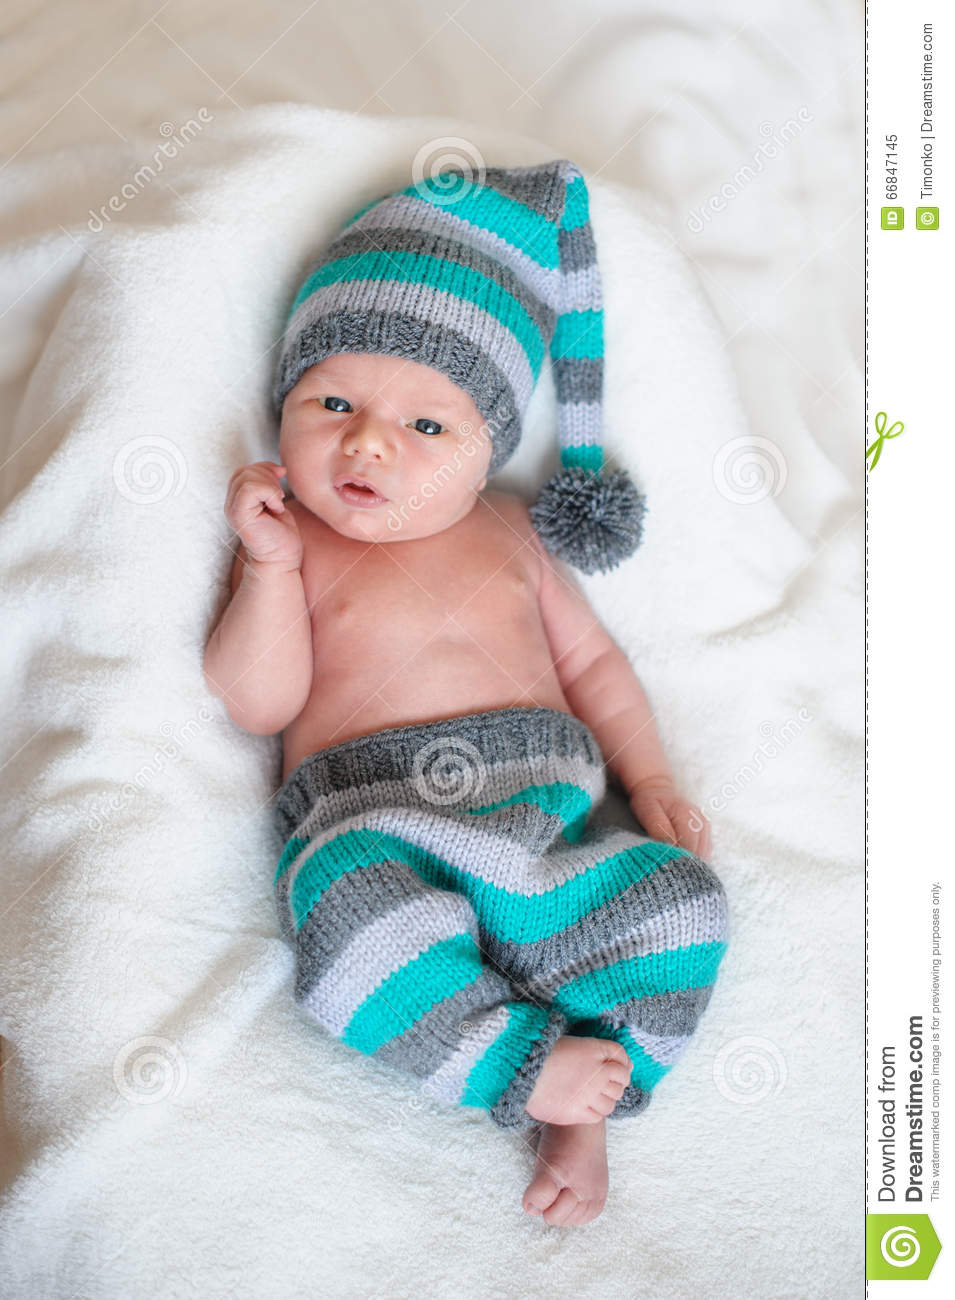 Little Baby Boy In A Knitted Hat Lying On The White Bed Stock Image ... e6f044ec9706